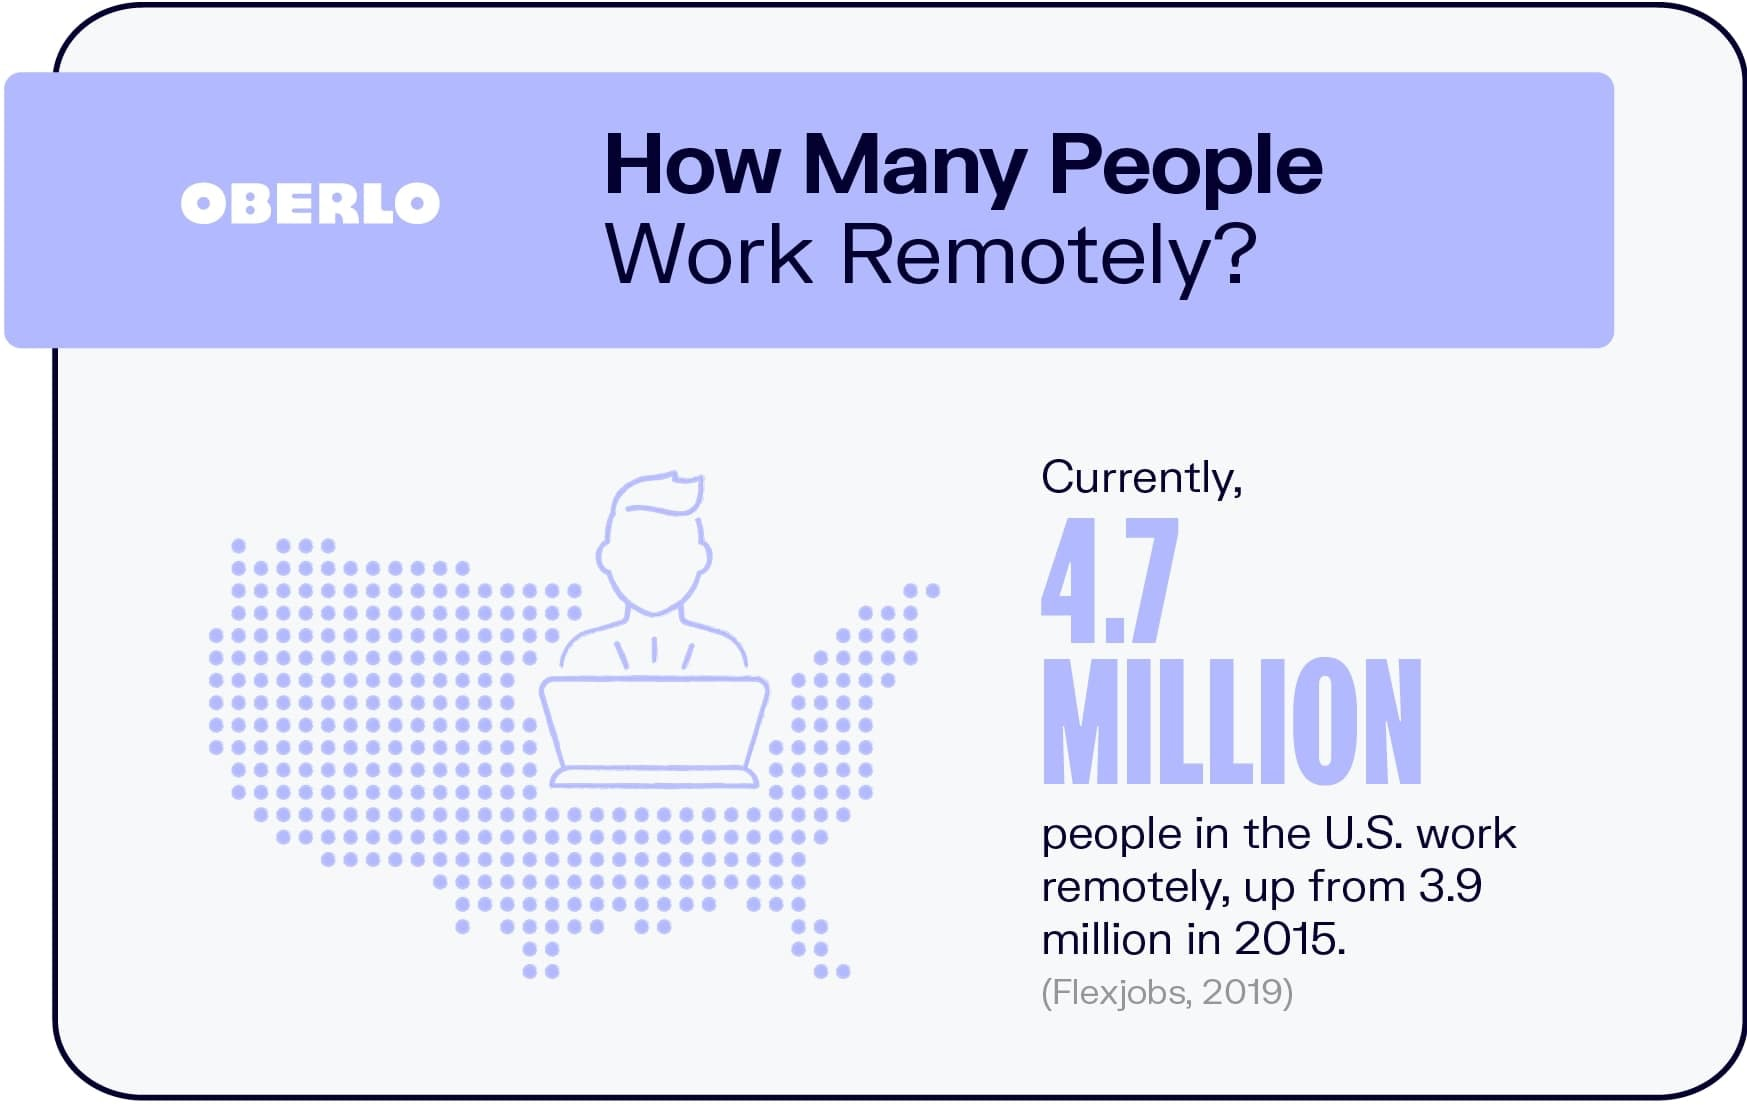 How Many People Work Remotely?